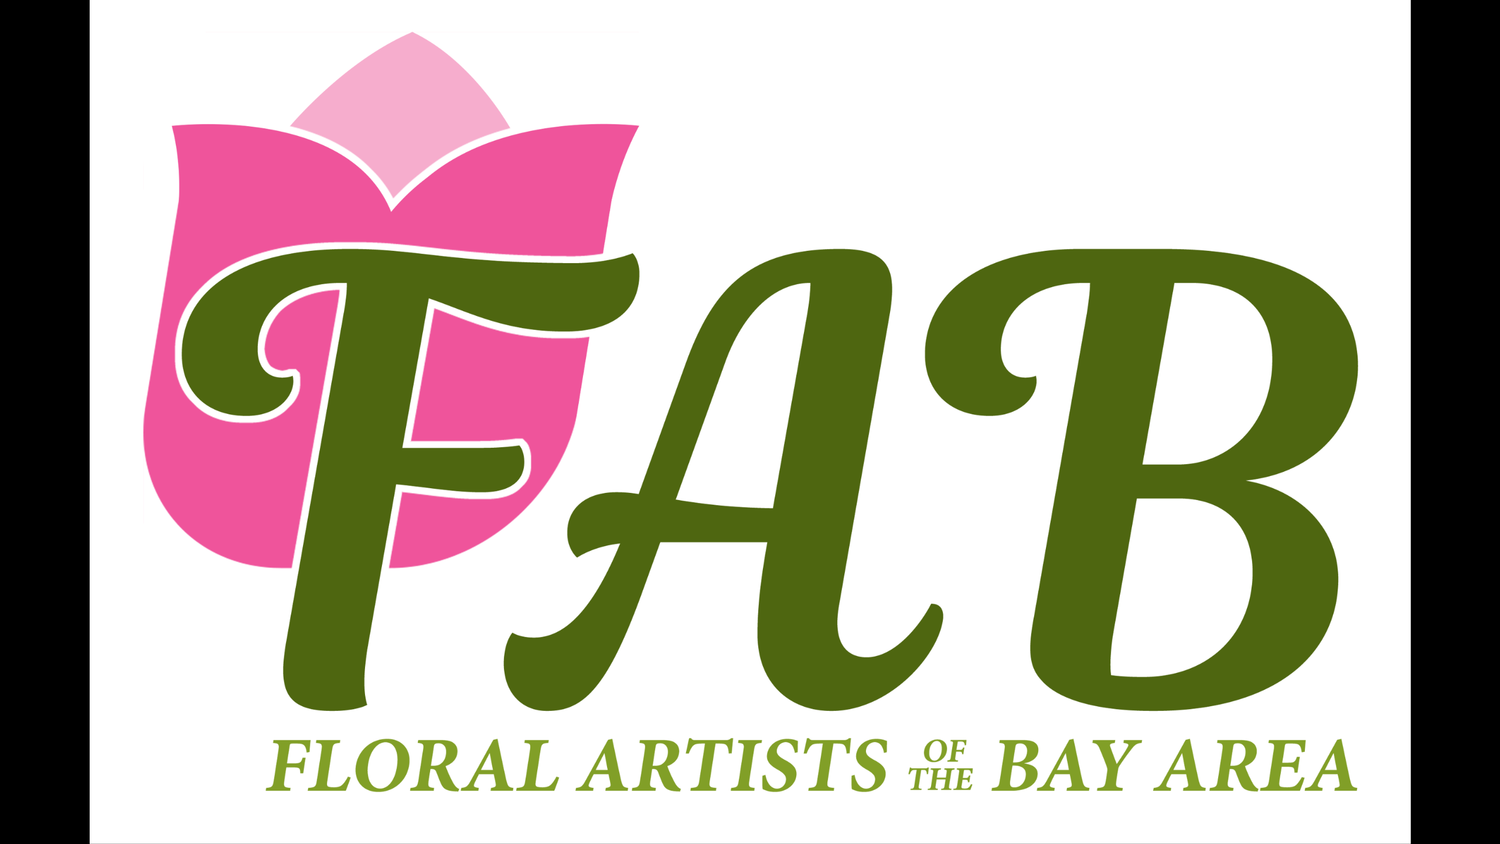 Floral Artists of the Bay Area